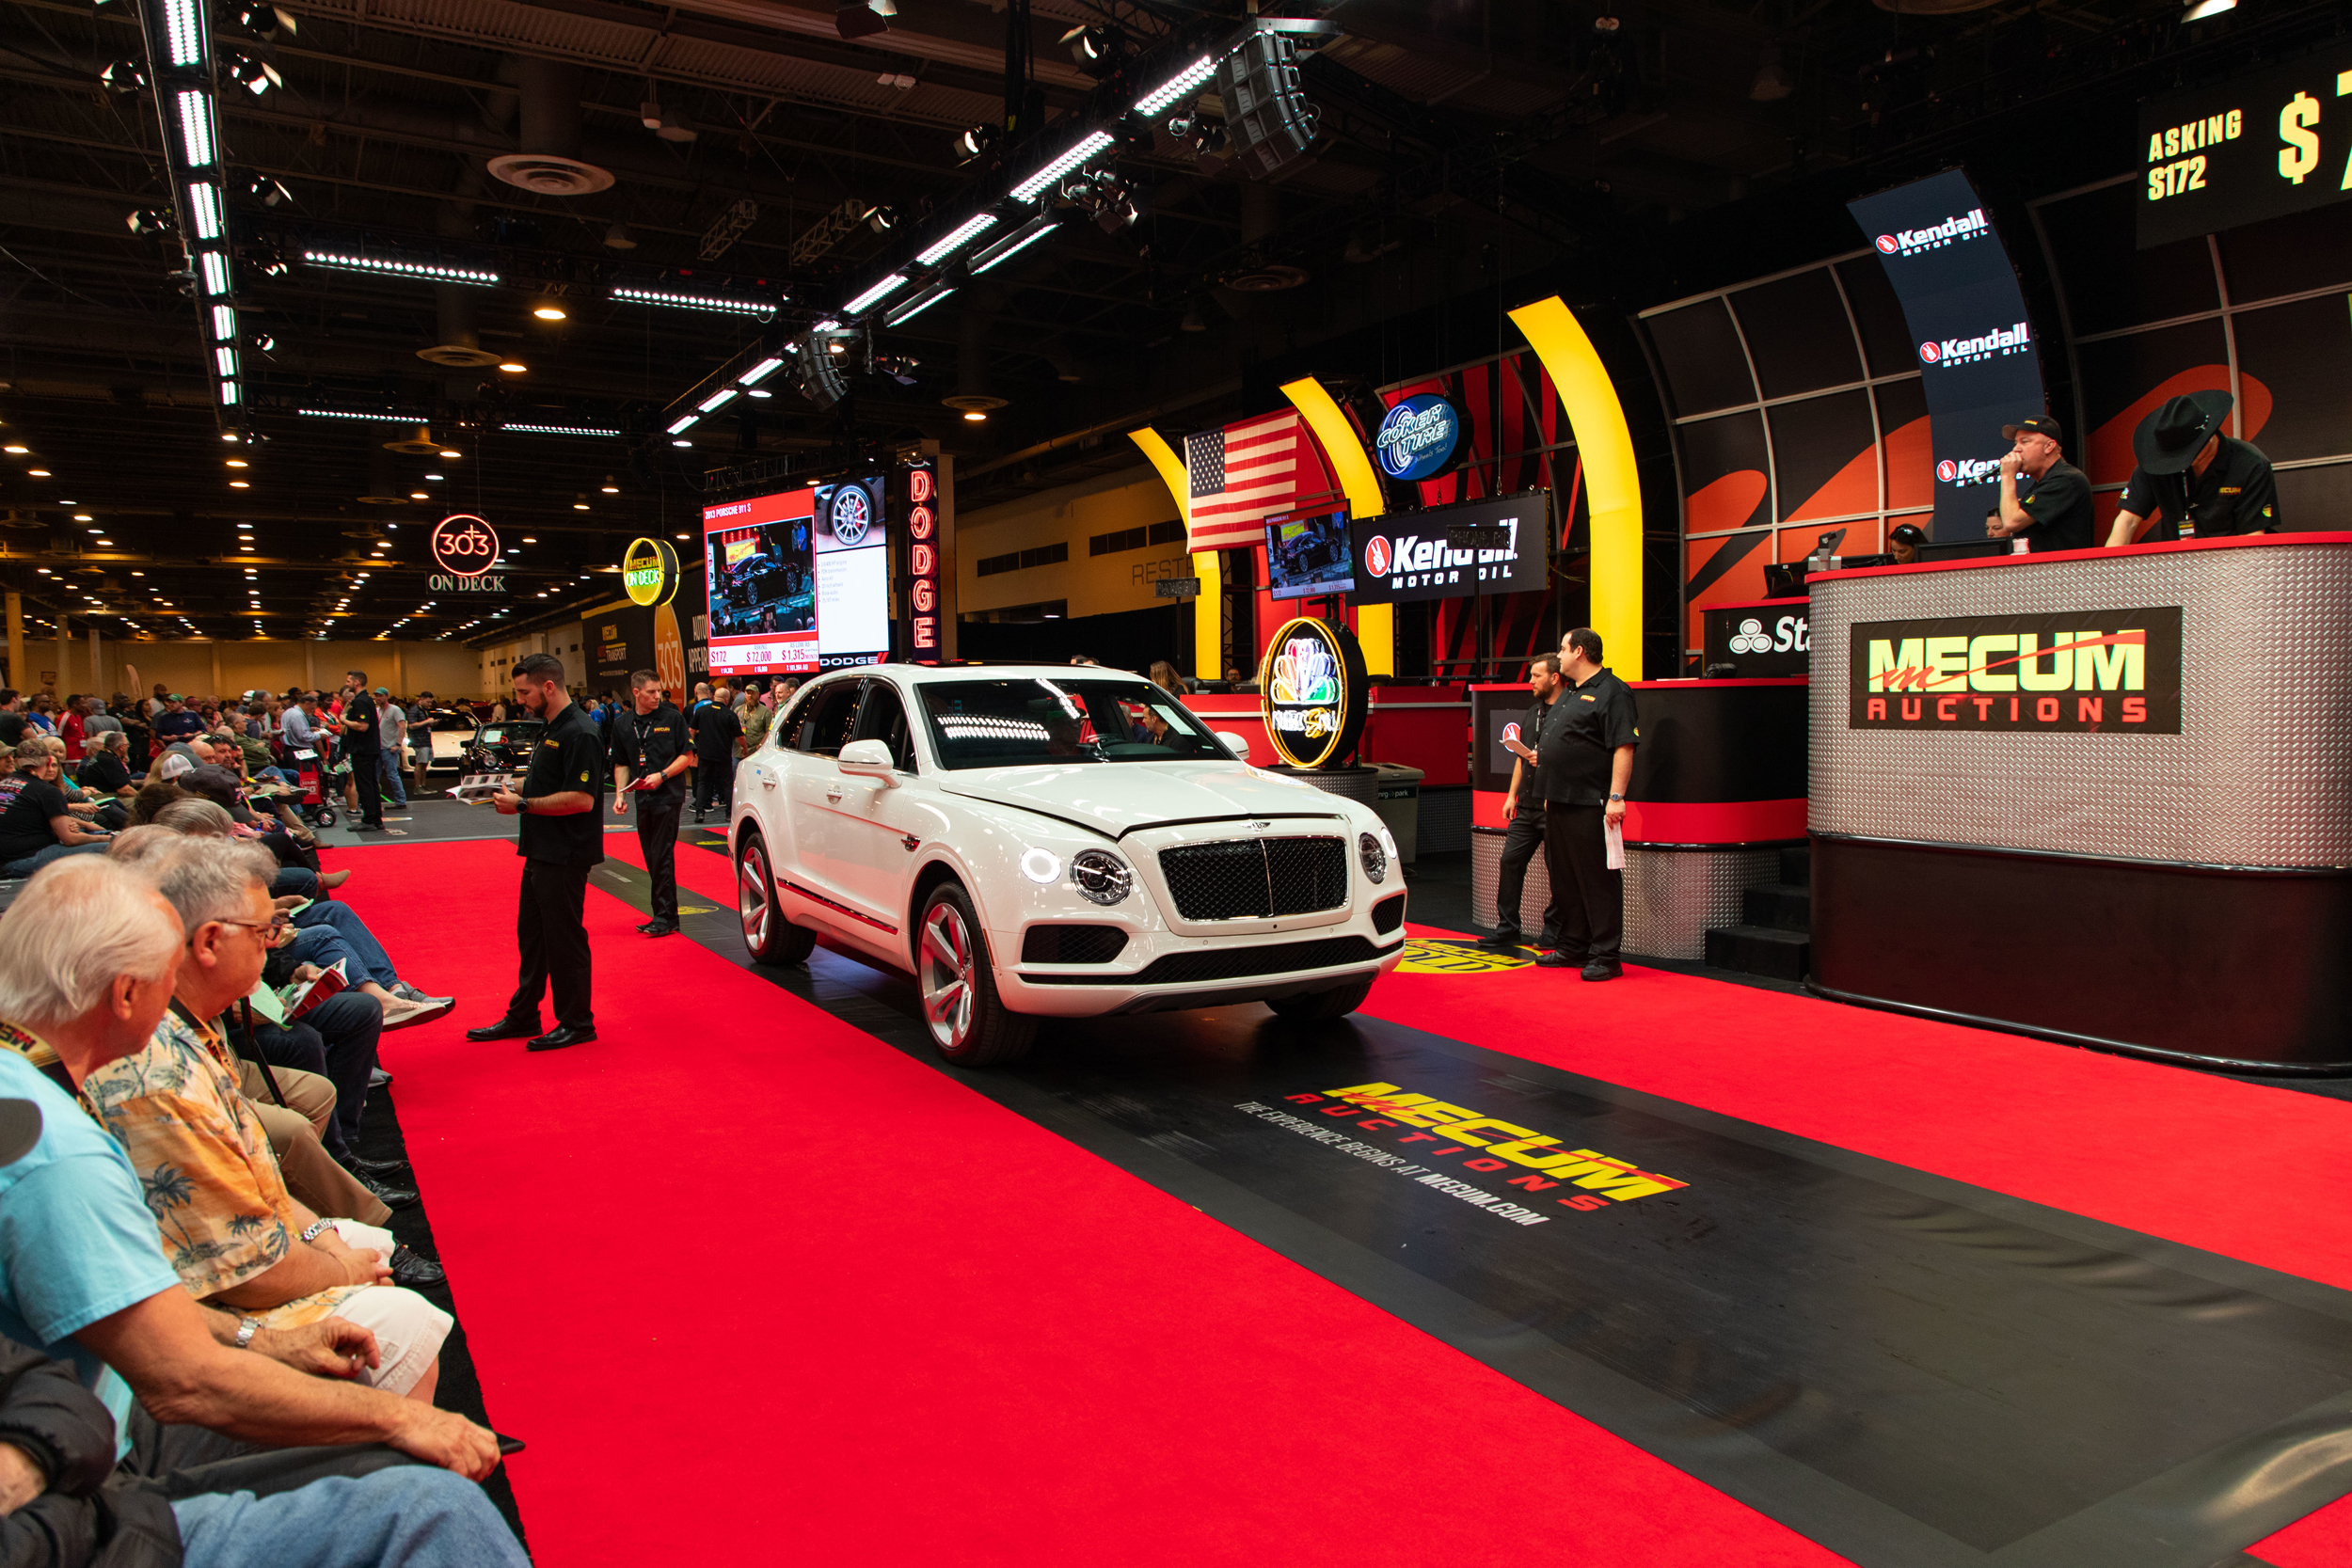 2019 Bentley Bentayga (Lot S172.1) Sells at $187,000 - Mecum Houston 2019